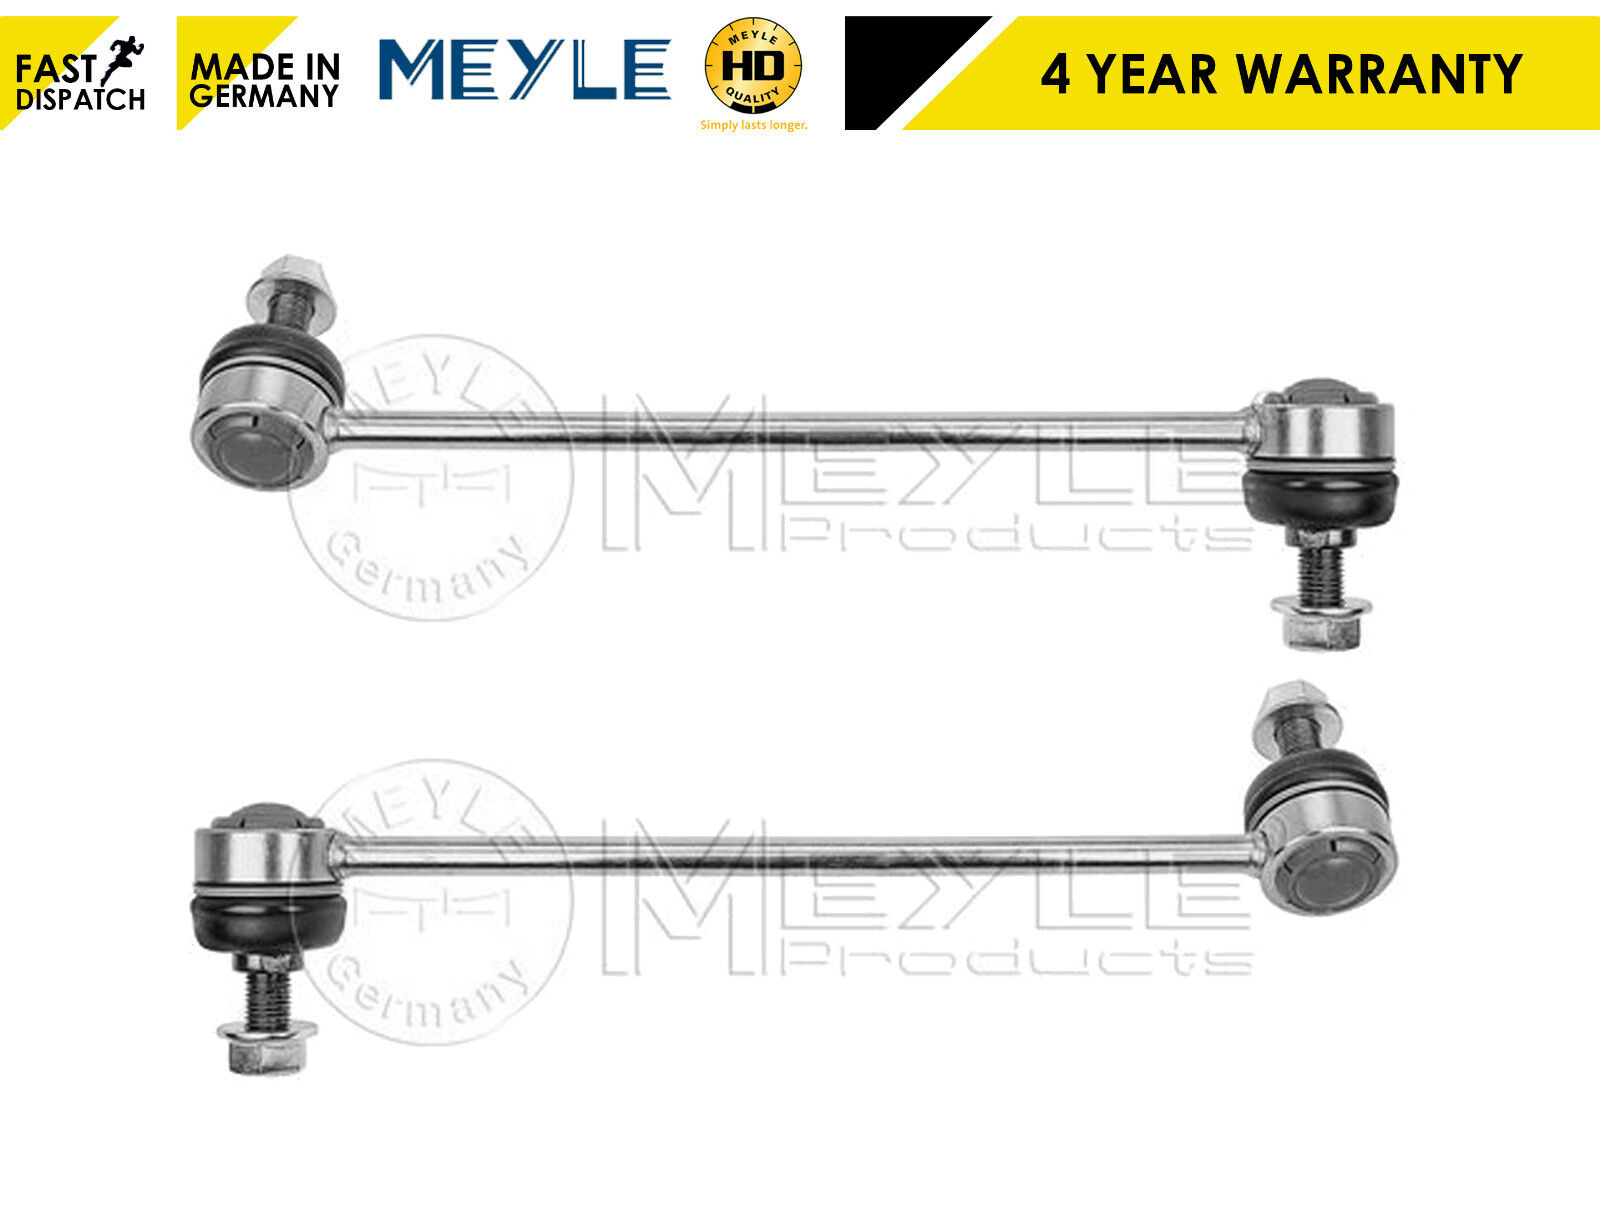 RIGHT FOR VOLVO MODELS *NEW* REAR ANTI-ROLL STABILISER DROP LINK ROD LEFT